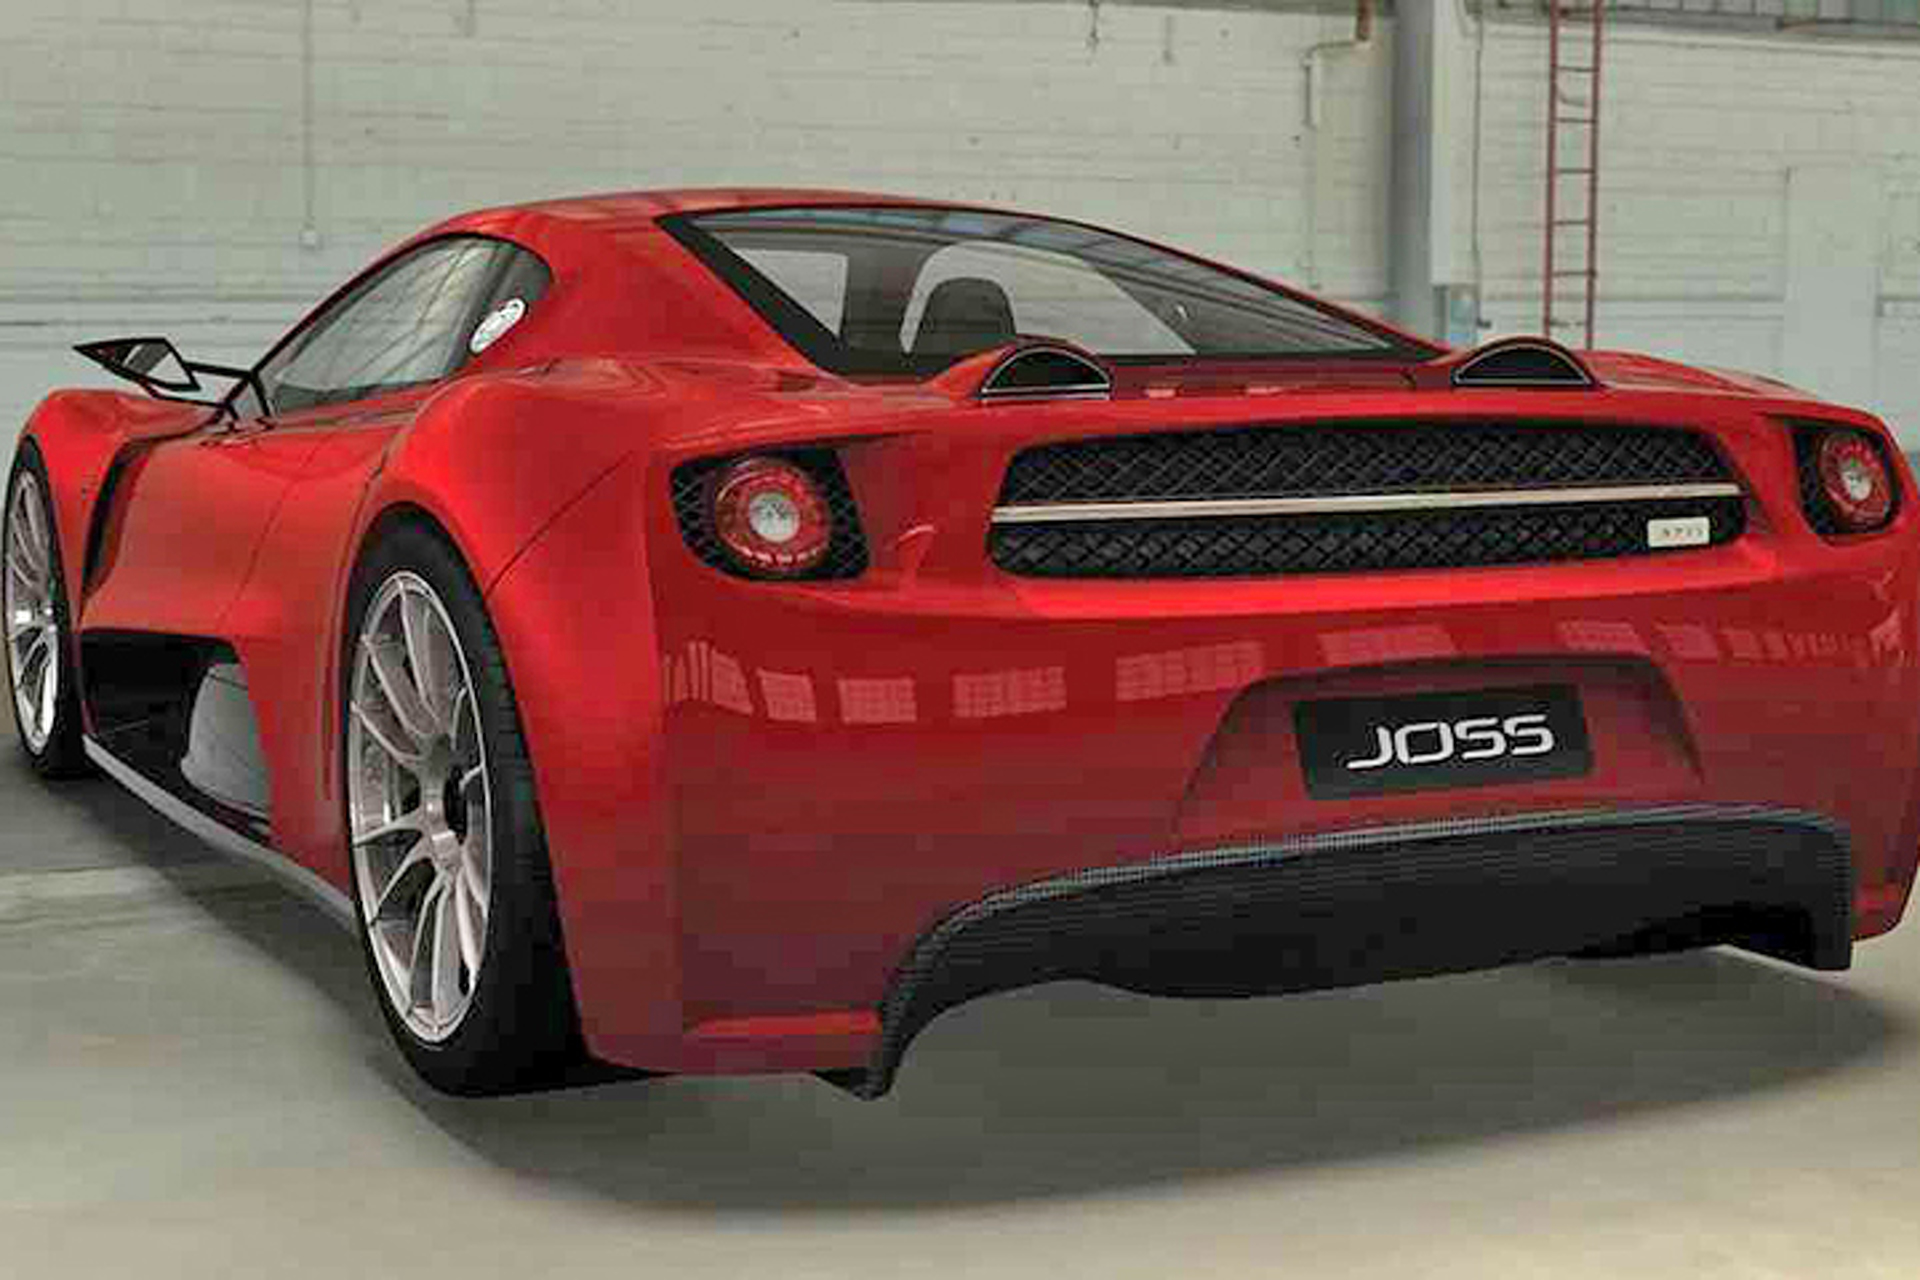 Australian Supercar Hits Jackpot After Crowd Funding Shortfall